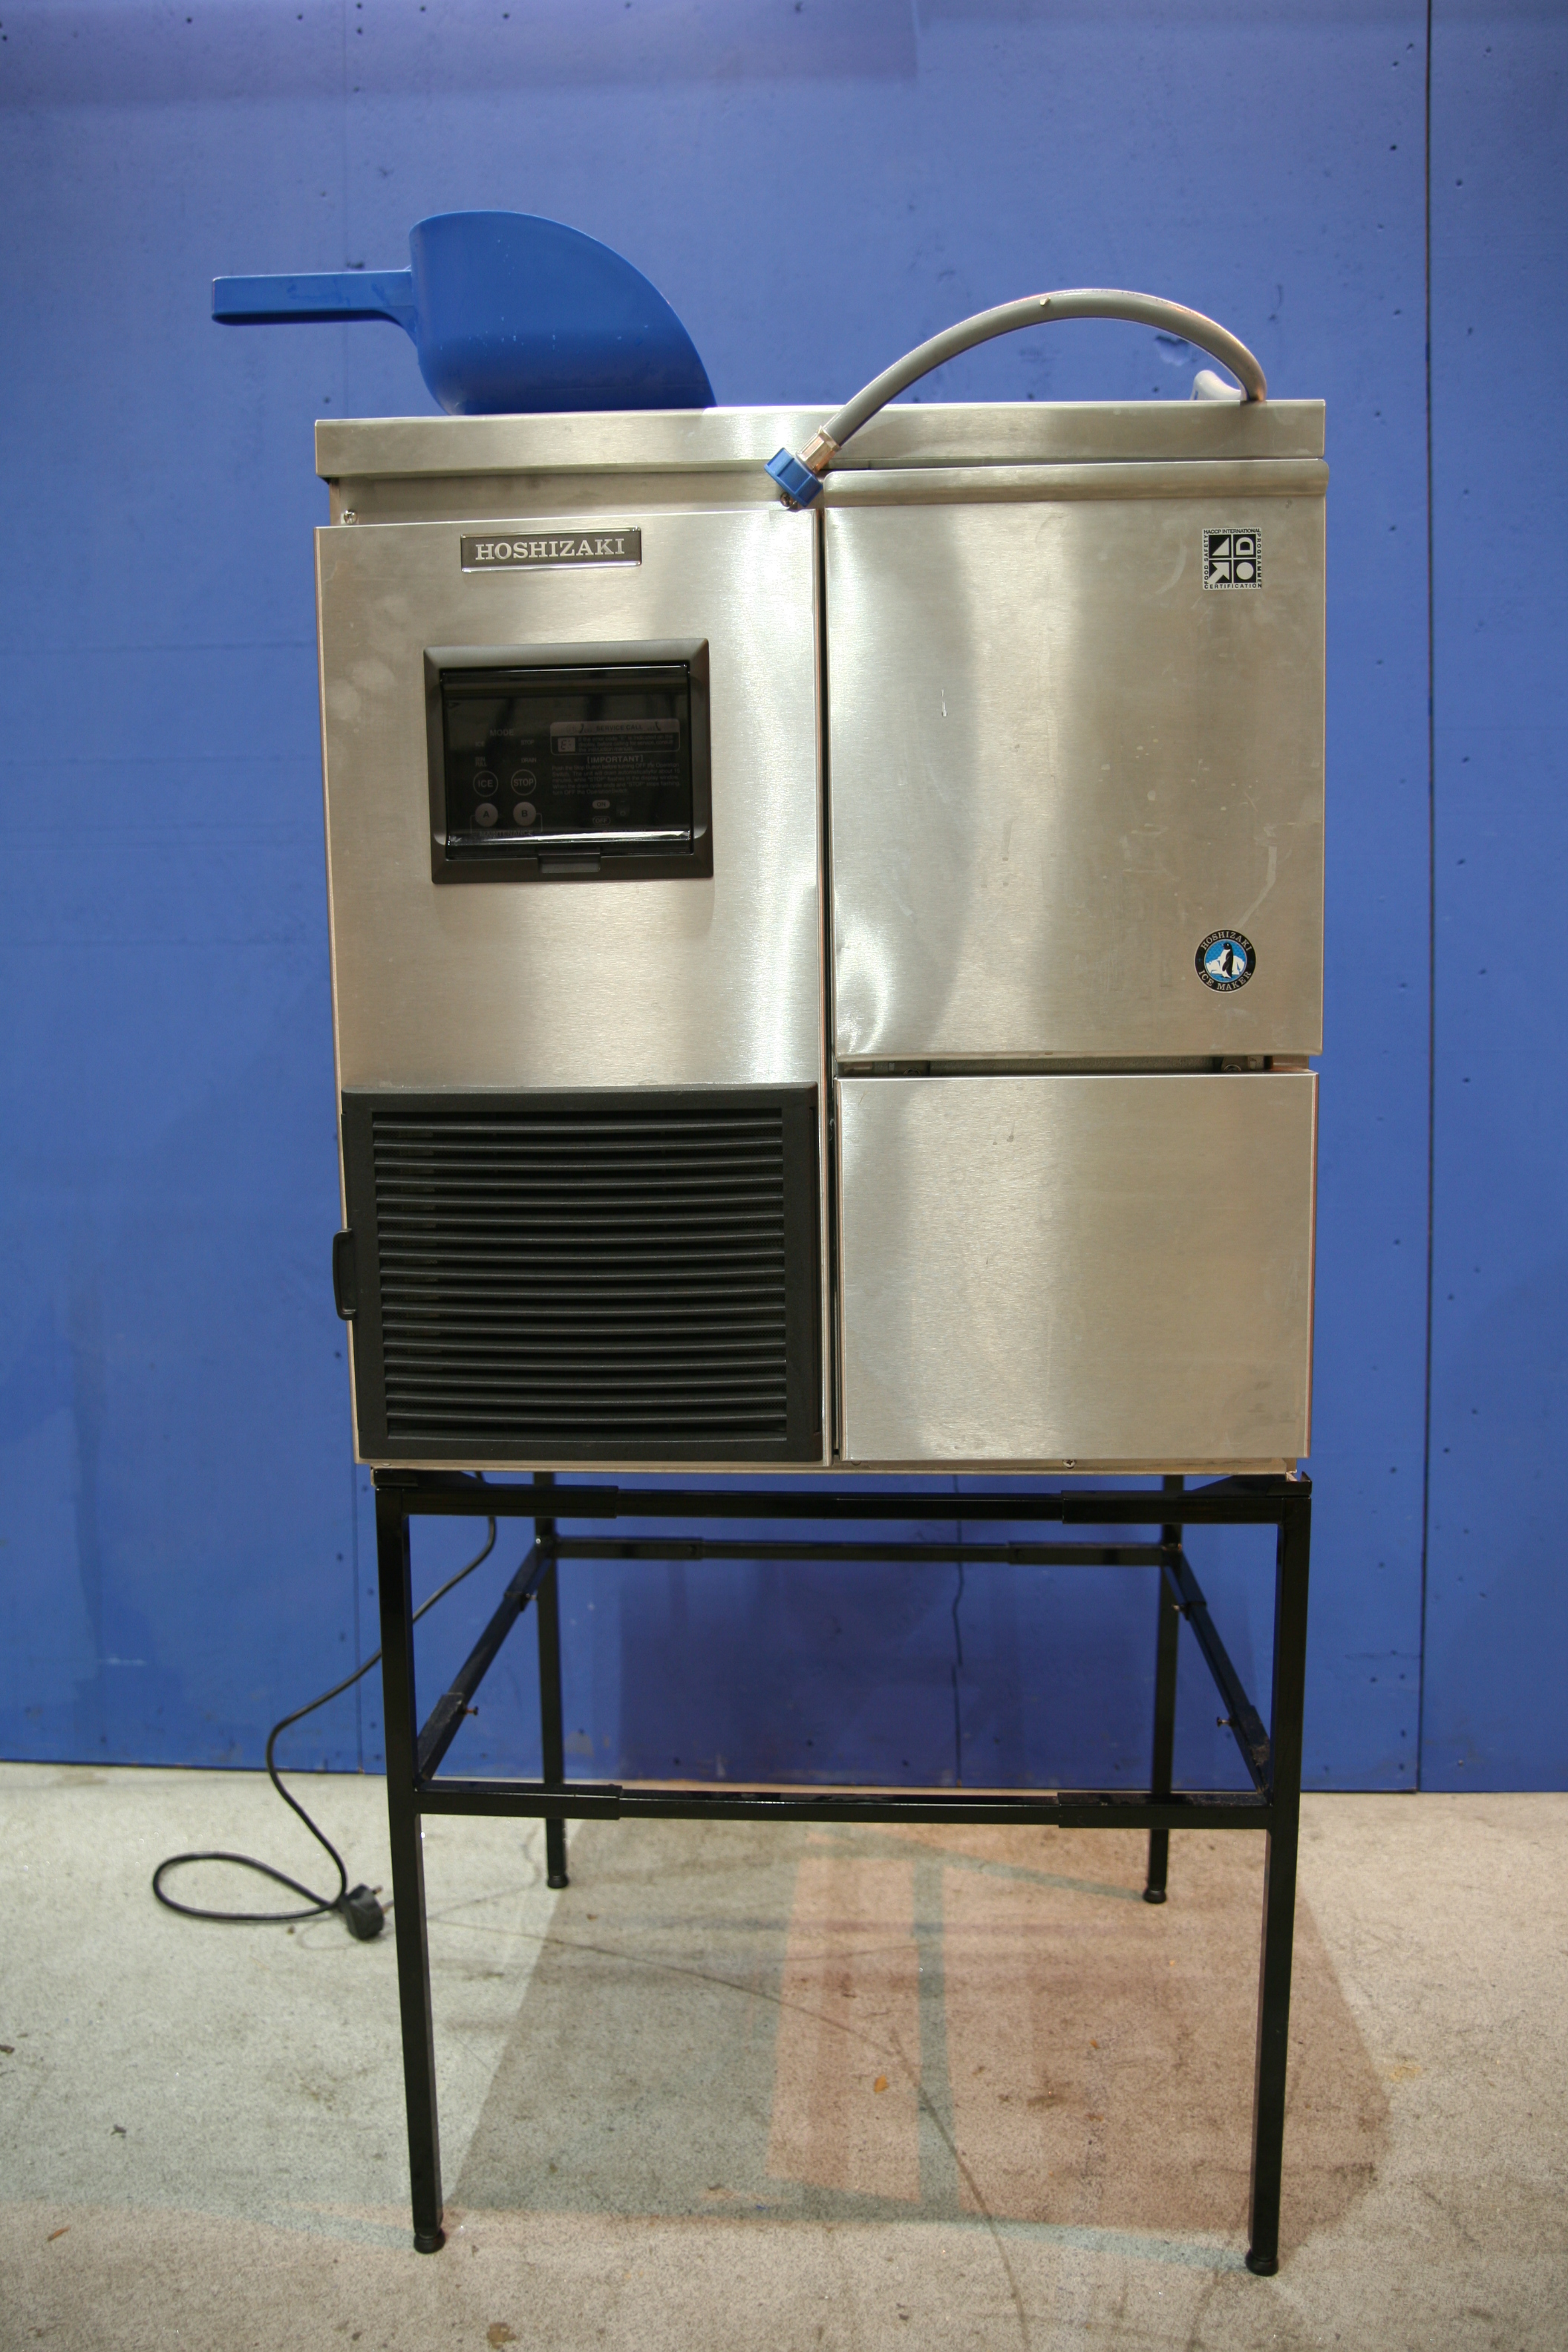 Lot 47 - Hoshizaki Ice Flaking Machine Produces flaked ice, Stainless steel construction,